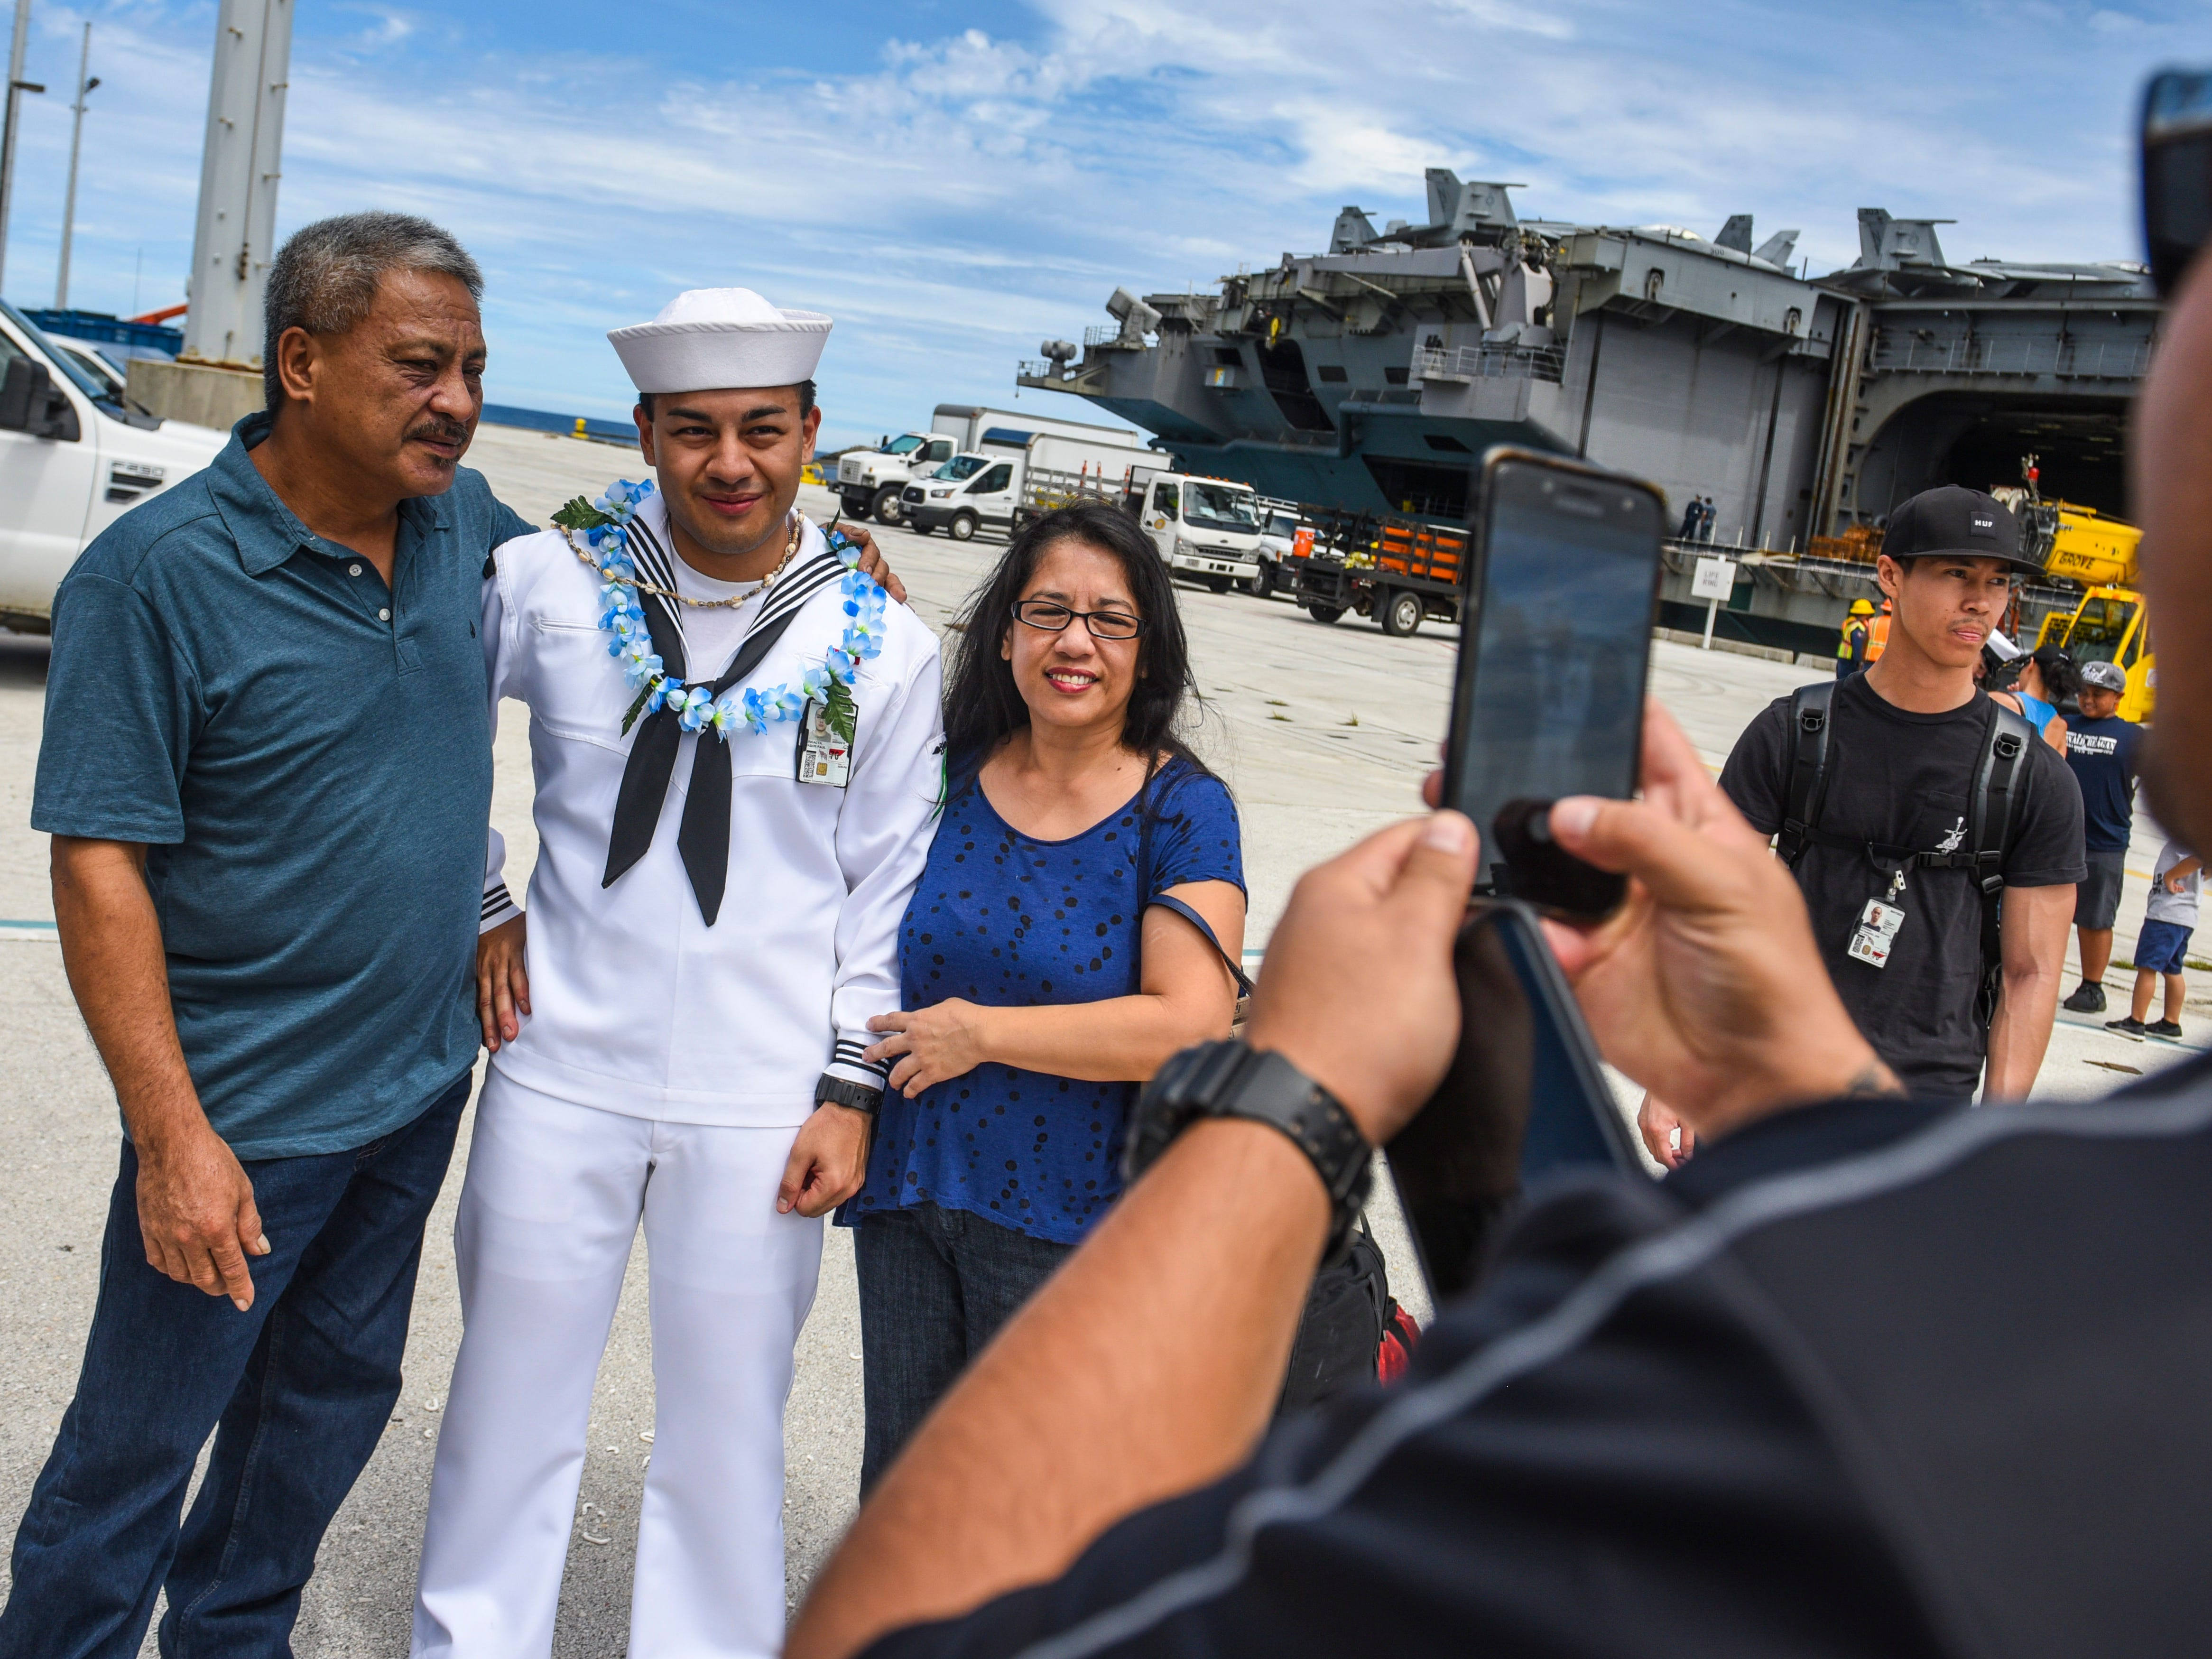 Airman Jason Ungacta, is greeted by his parents, Paul, left, and Rena Ungacta, and other family members after his arrival aboard the Nimitz-class nuclear-powered aircraft carrier, USS Ronald Reagan, at Kilo Wharf on Naval Base Guam in Sumay, on Monday, Sept. 24, 2018.